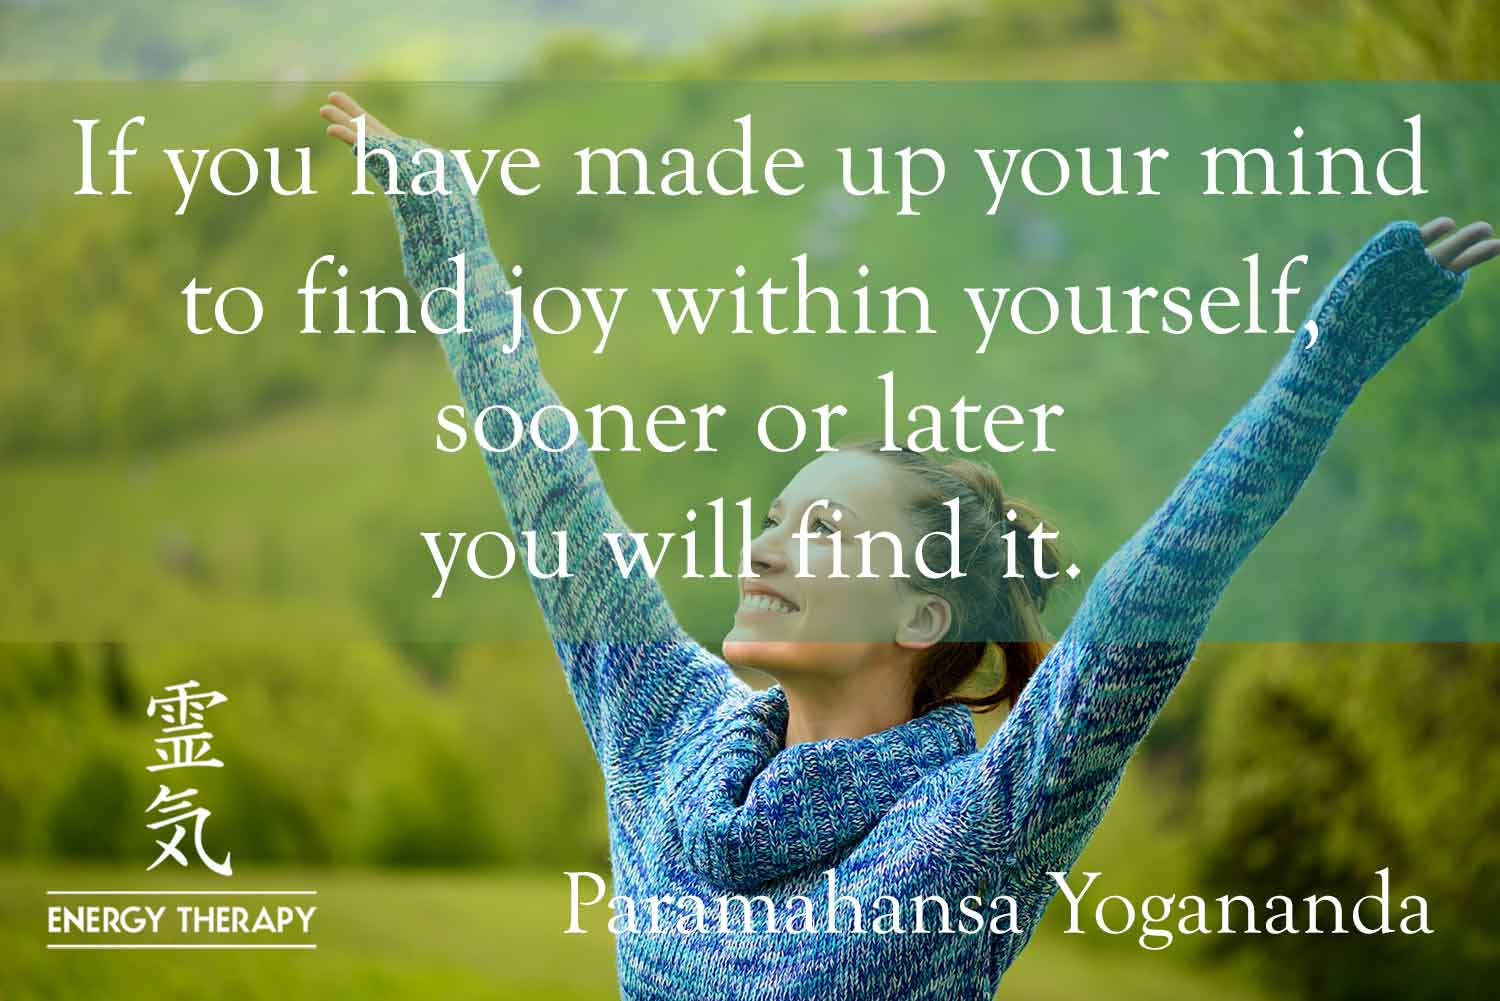 paramahansa yogananda - if you have made up your mind to find joy